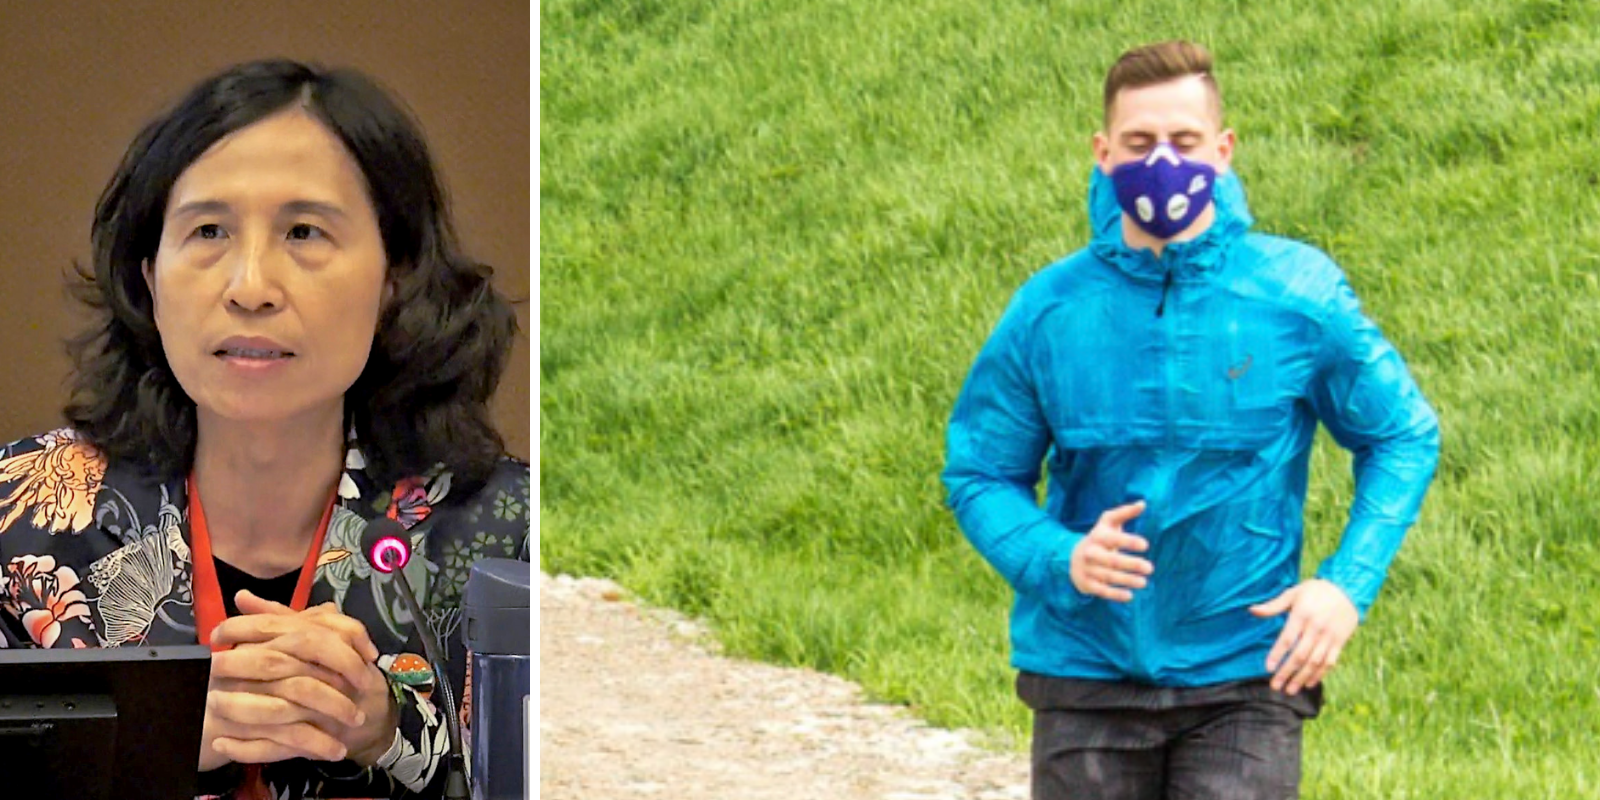 Dr. Theresa Tam recommends wearing masks while jogging outdoors